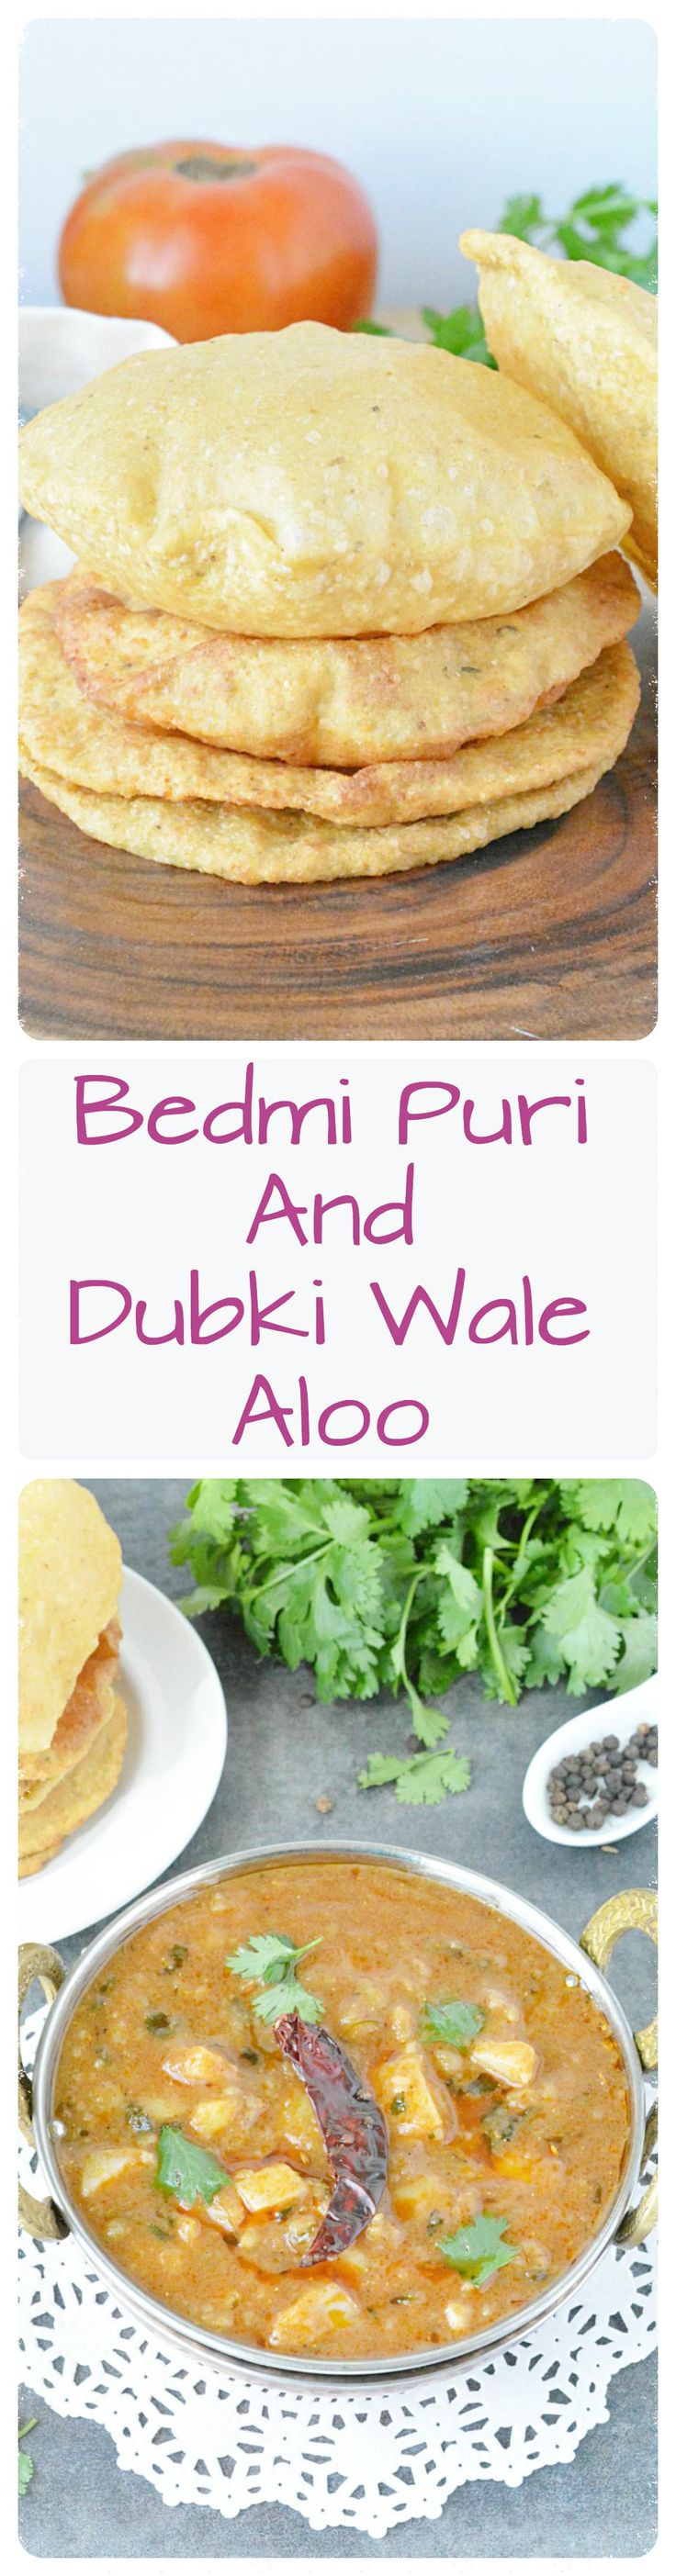 Grounded urad dal mixed with spices and wheat flour makes the famous bedmi poori reicpe. Bedmi poori with dubki wale aloo.